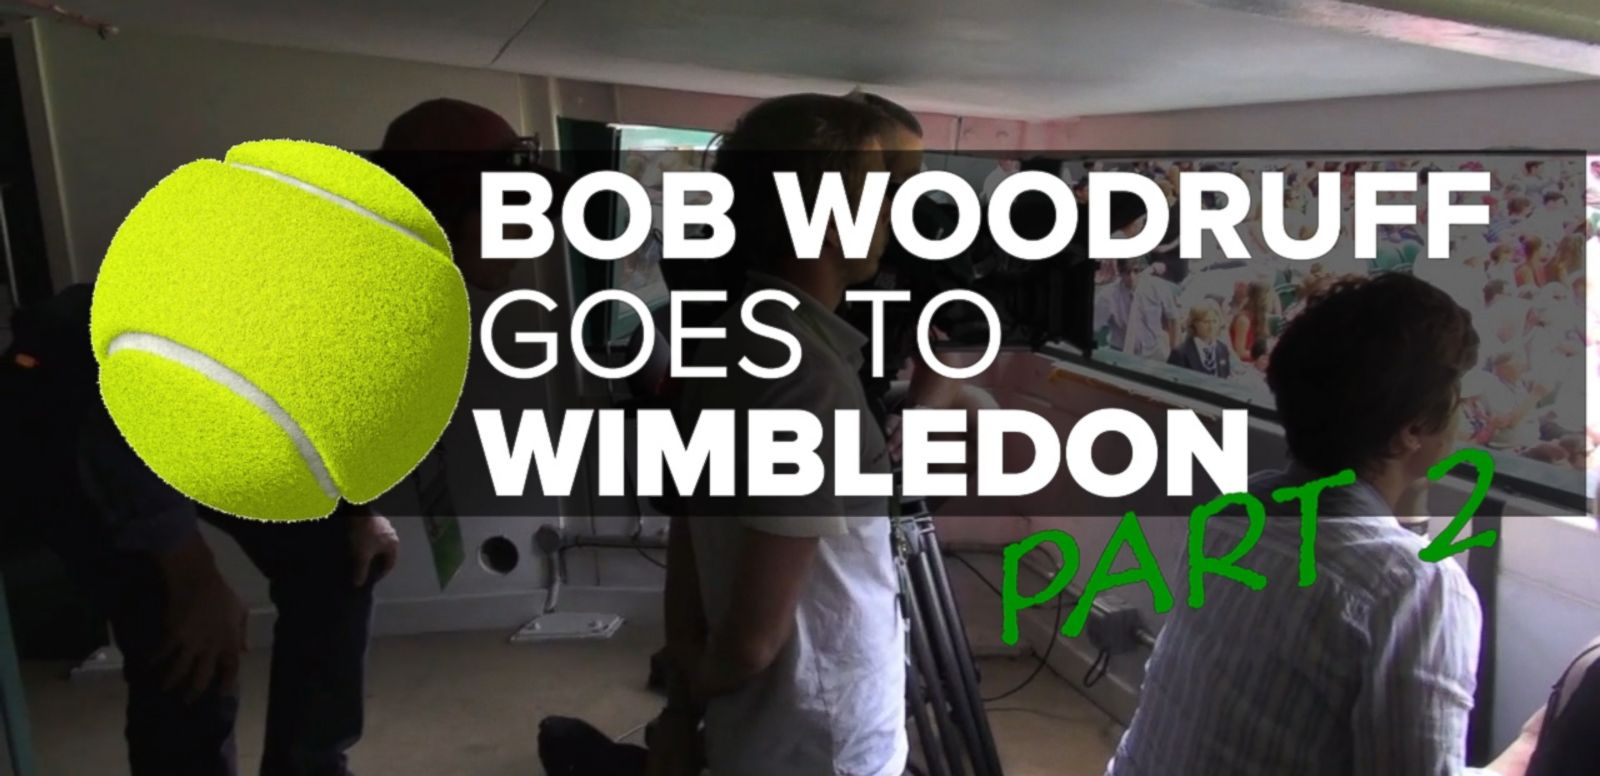 VIDEO: Wimbledon 2015 Week Two: Inside the Secret Bunker